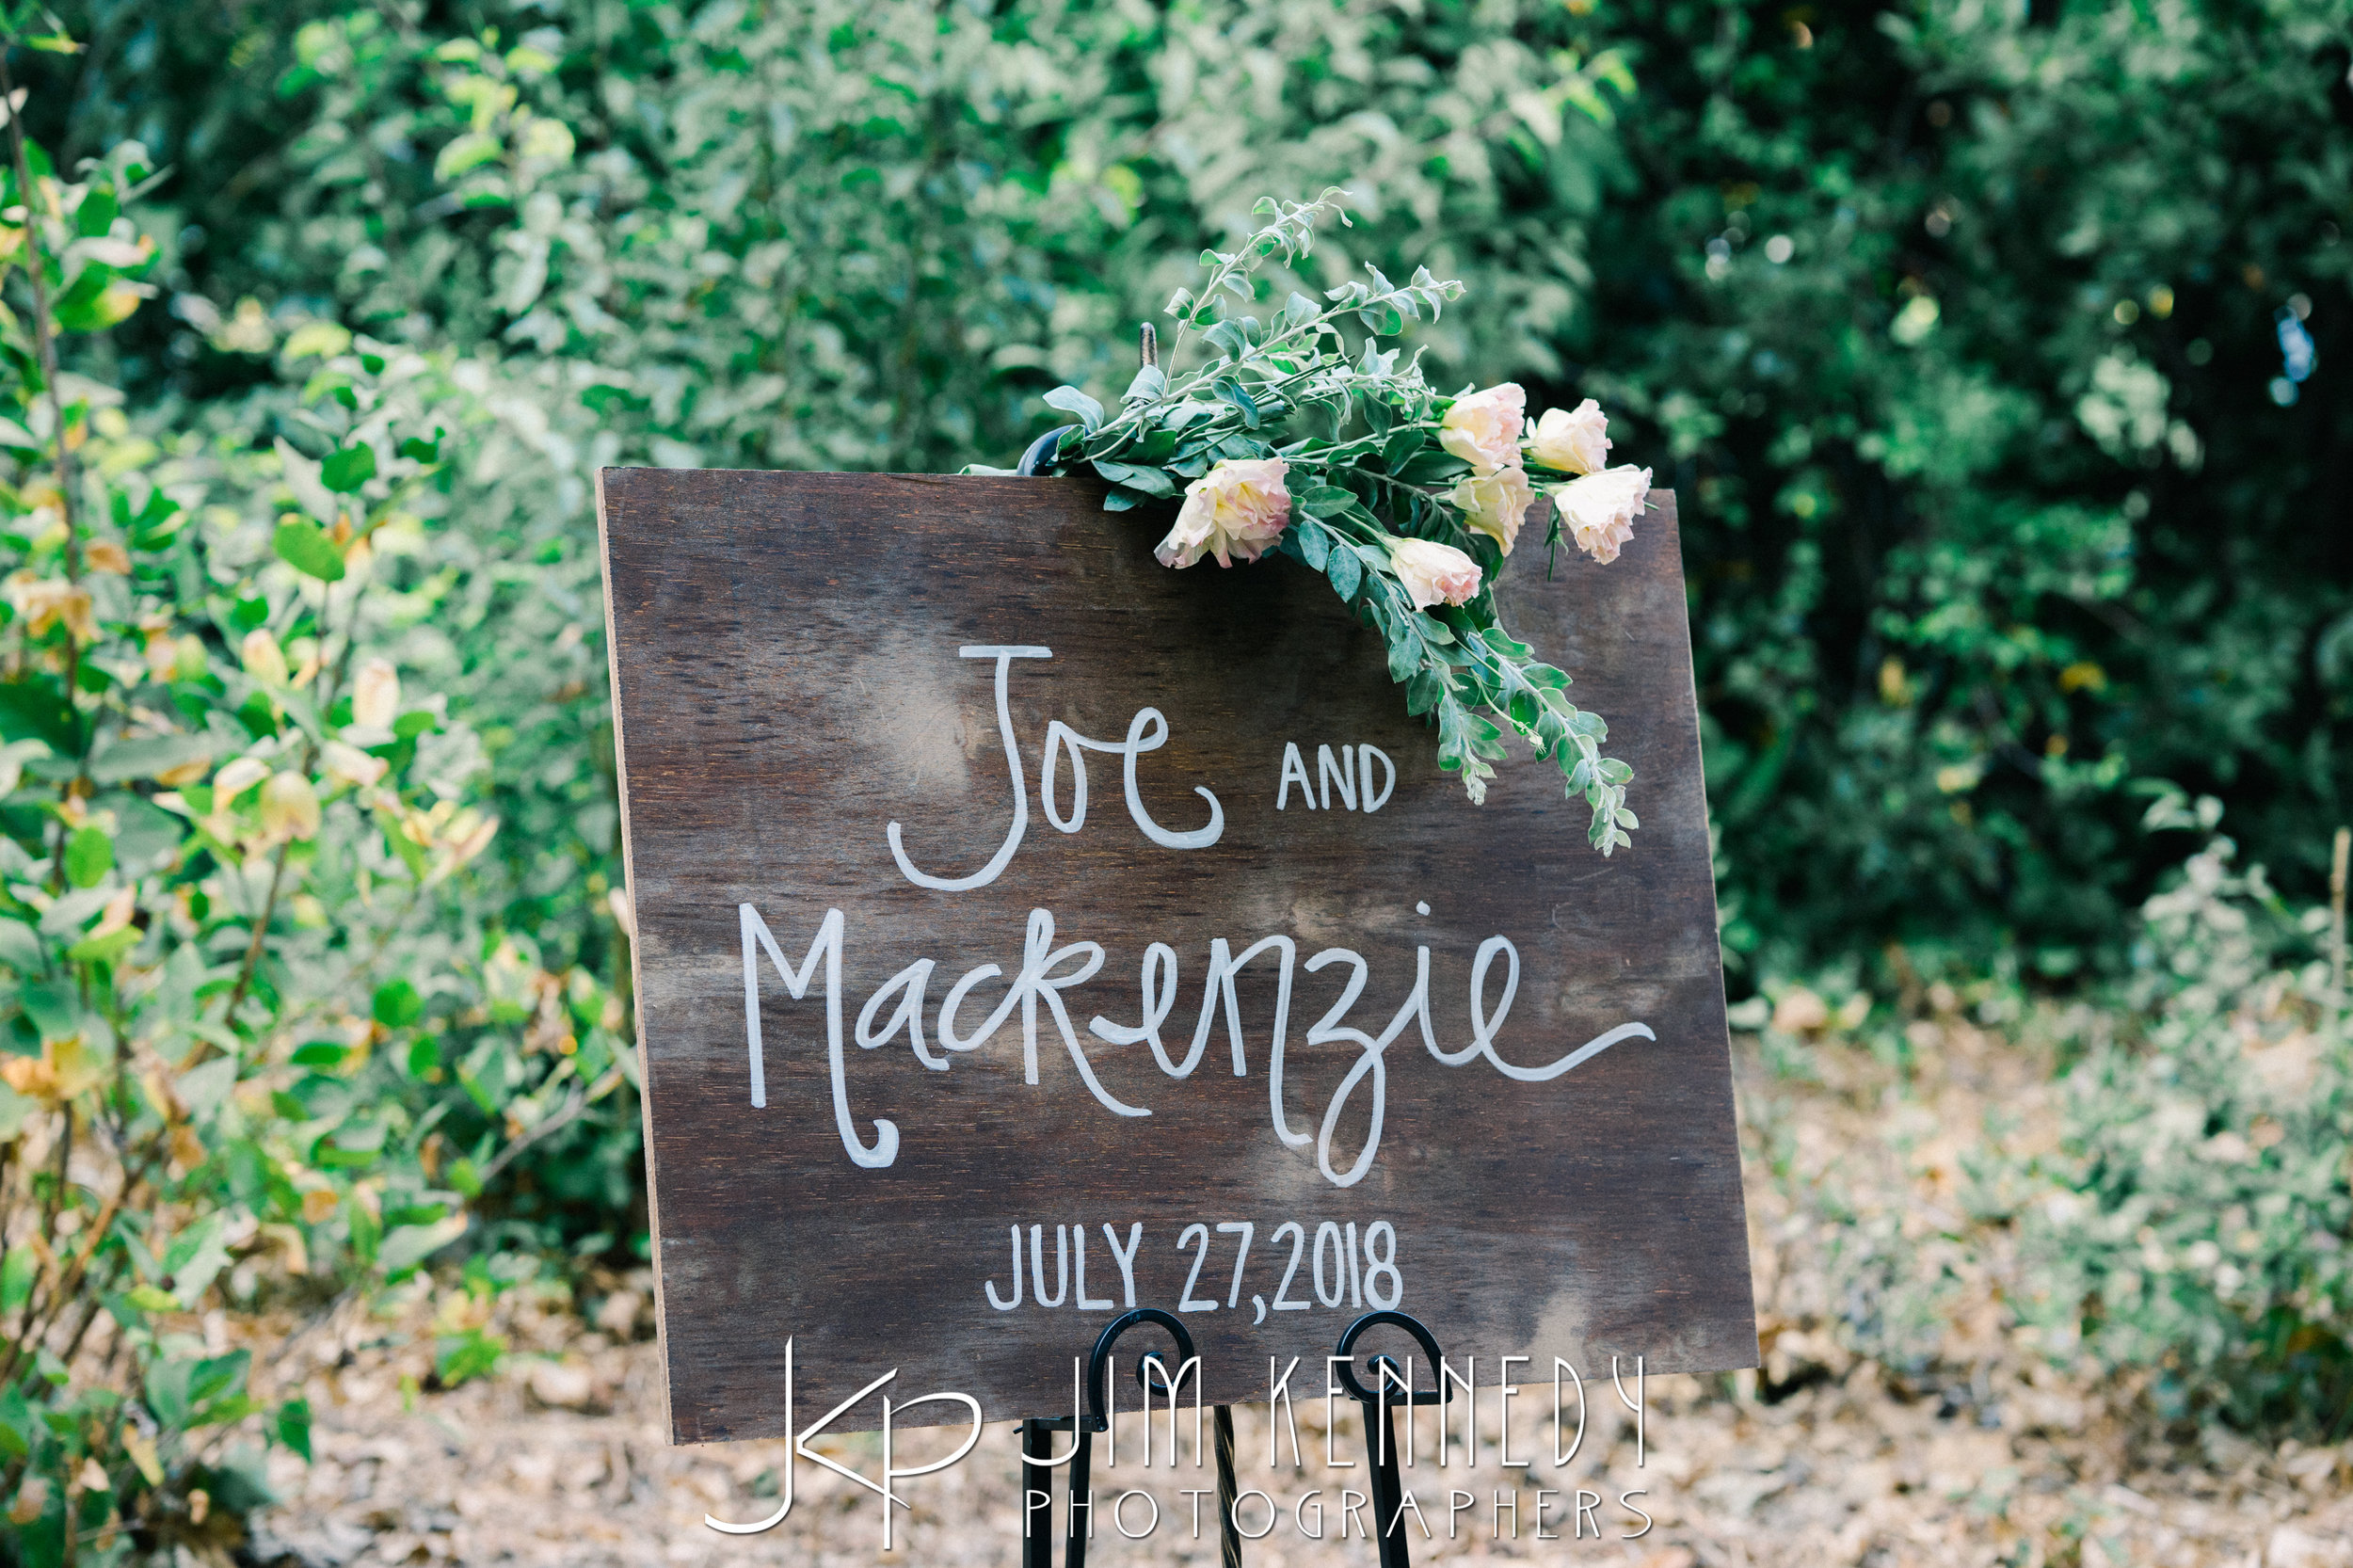 ardenwood-events-wedding-mackenzie_139.JPG